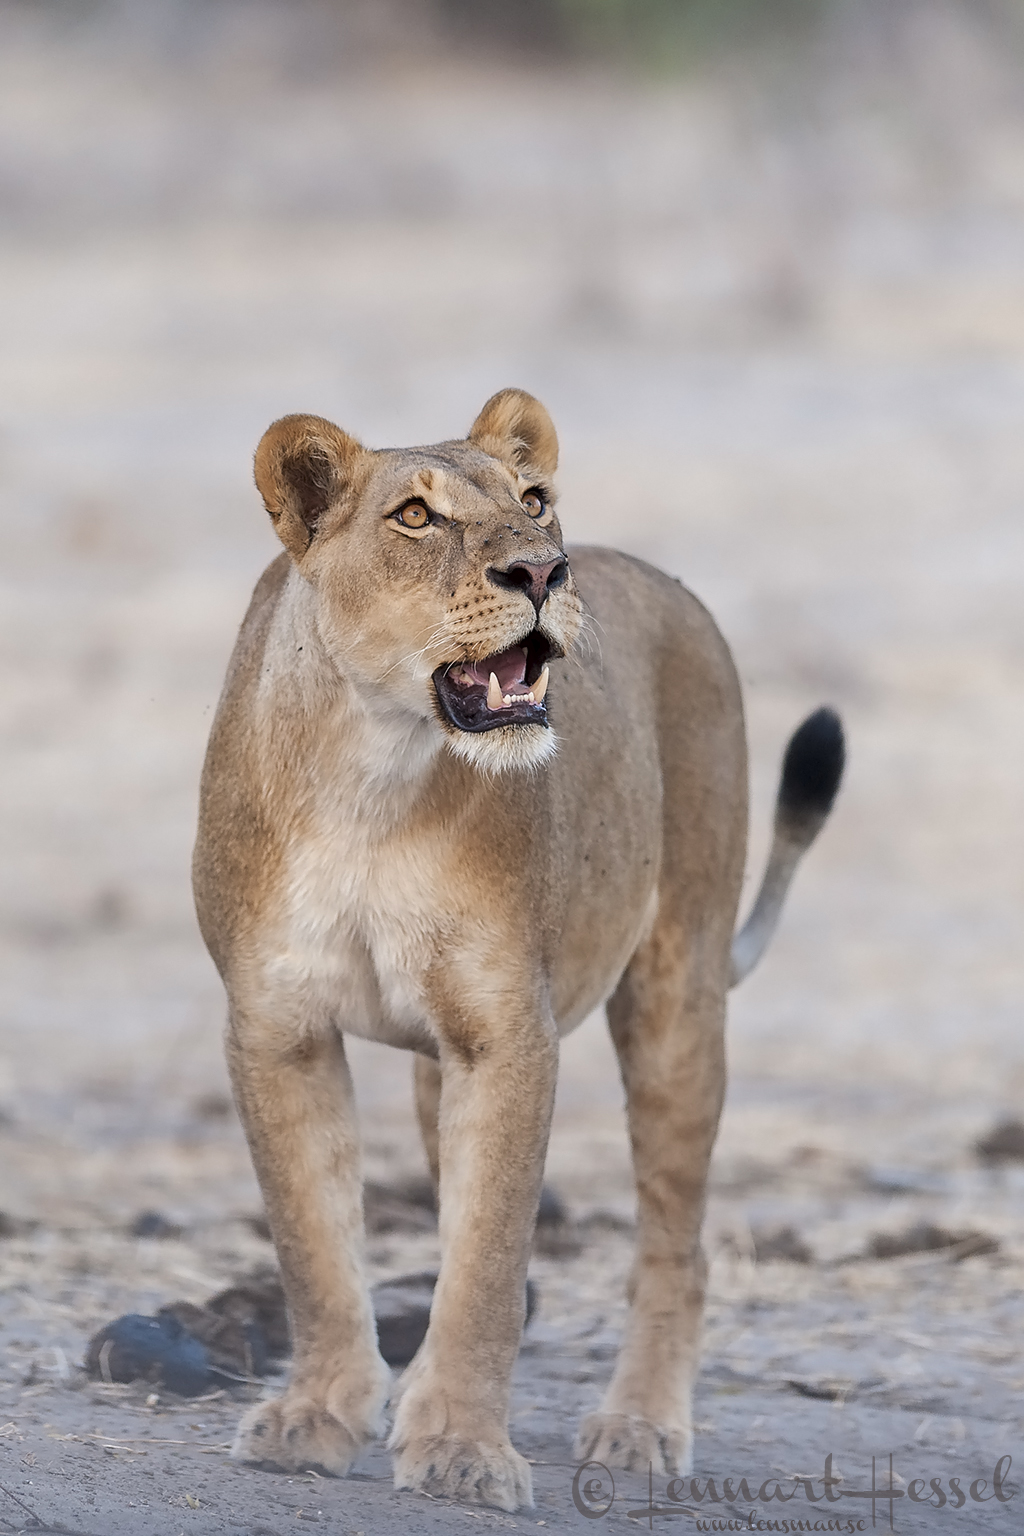 Lioness looking up in Chobe River area, Botswana